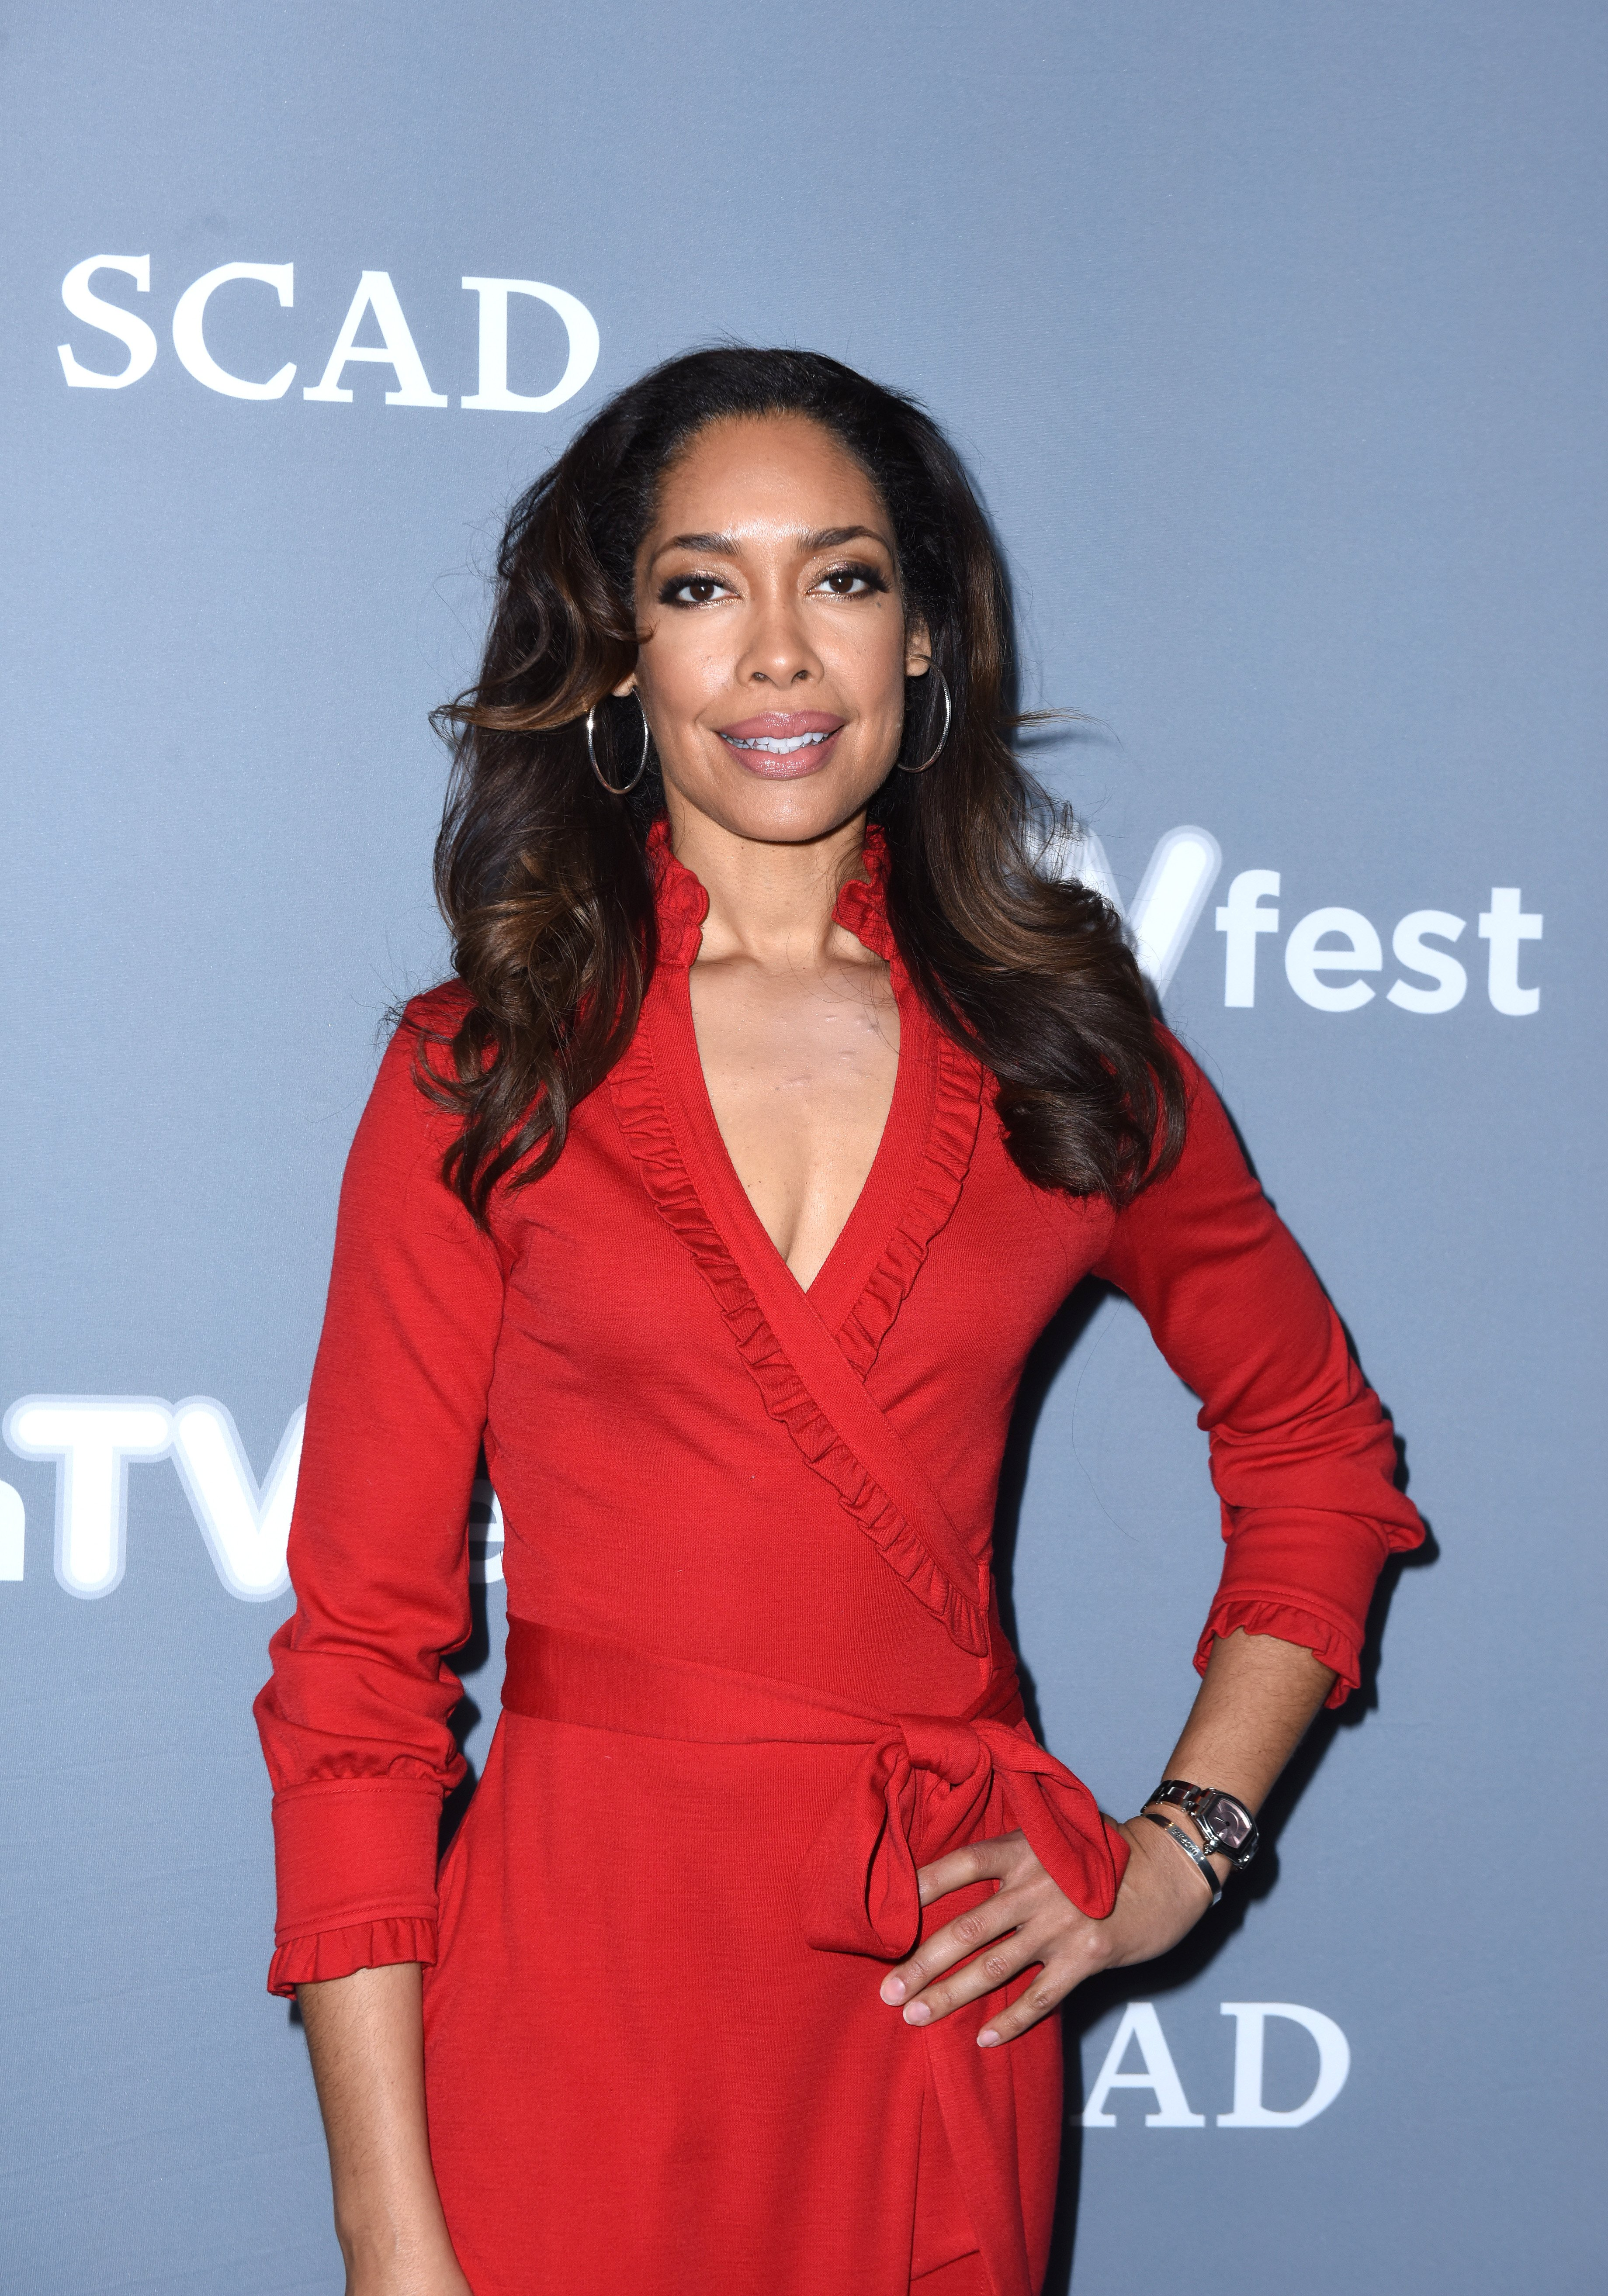 """Gina Torres attends a press junket for """"The Catch"""" on Day Three of aTVfest 2017 presented by SCAD on February 4, 2017 in Atlanta, Georgia 